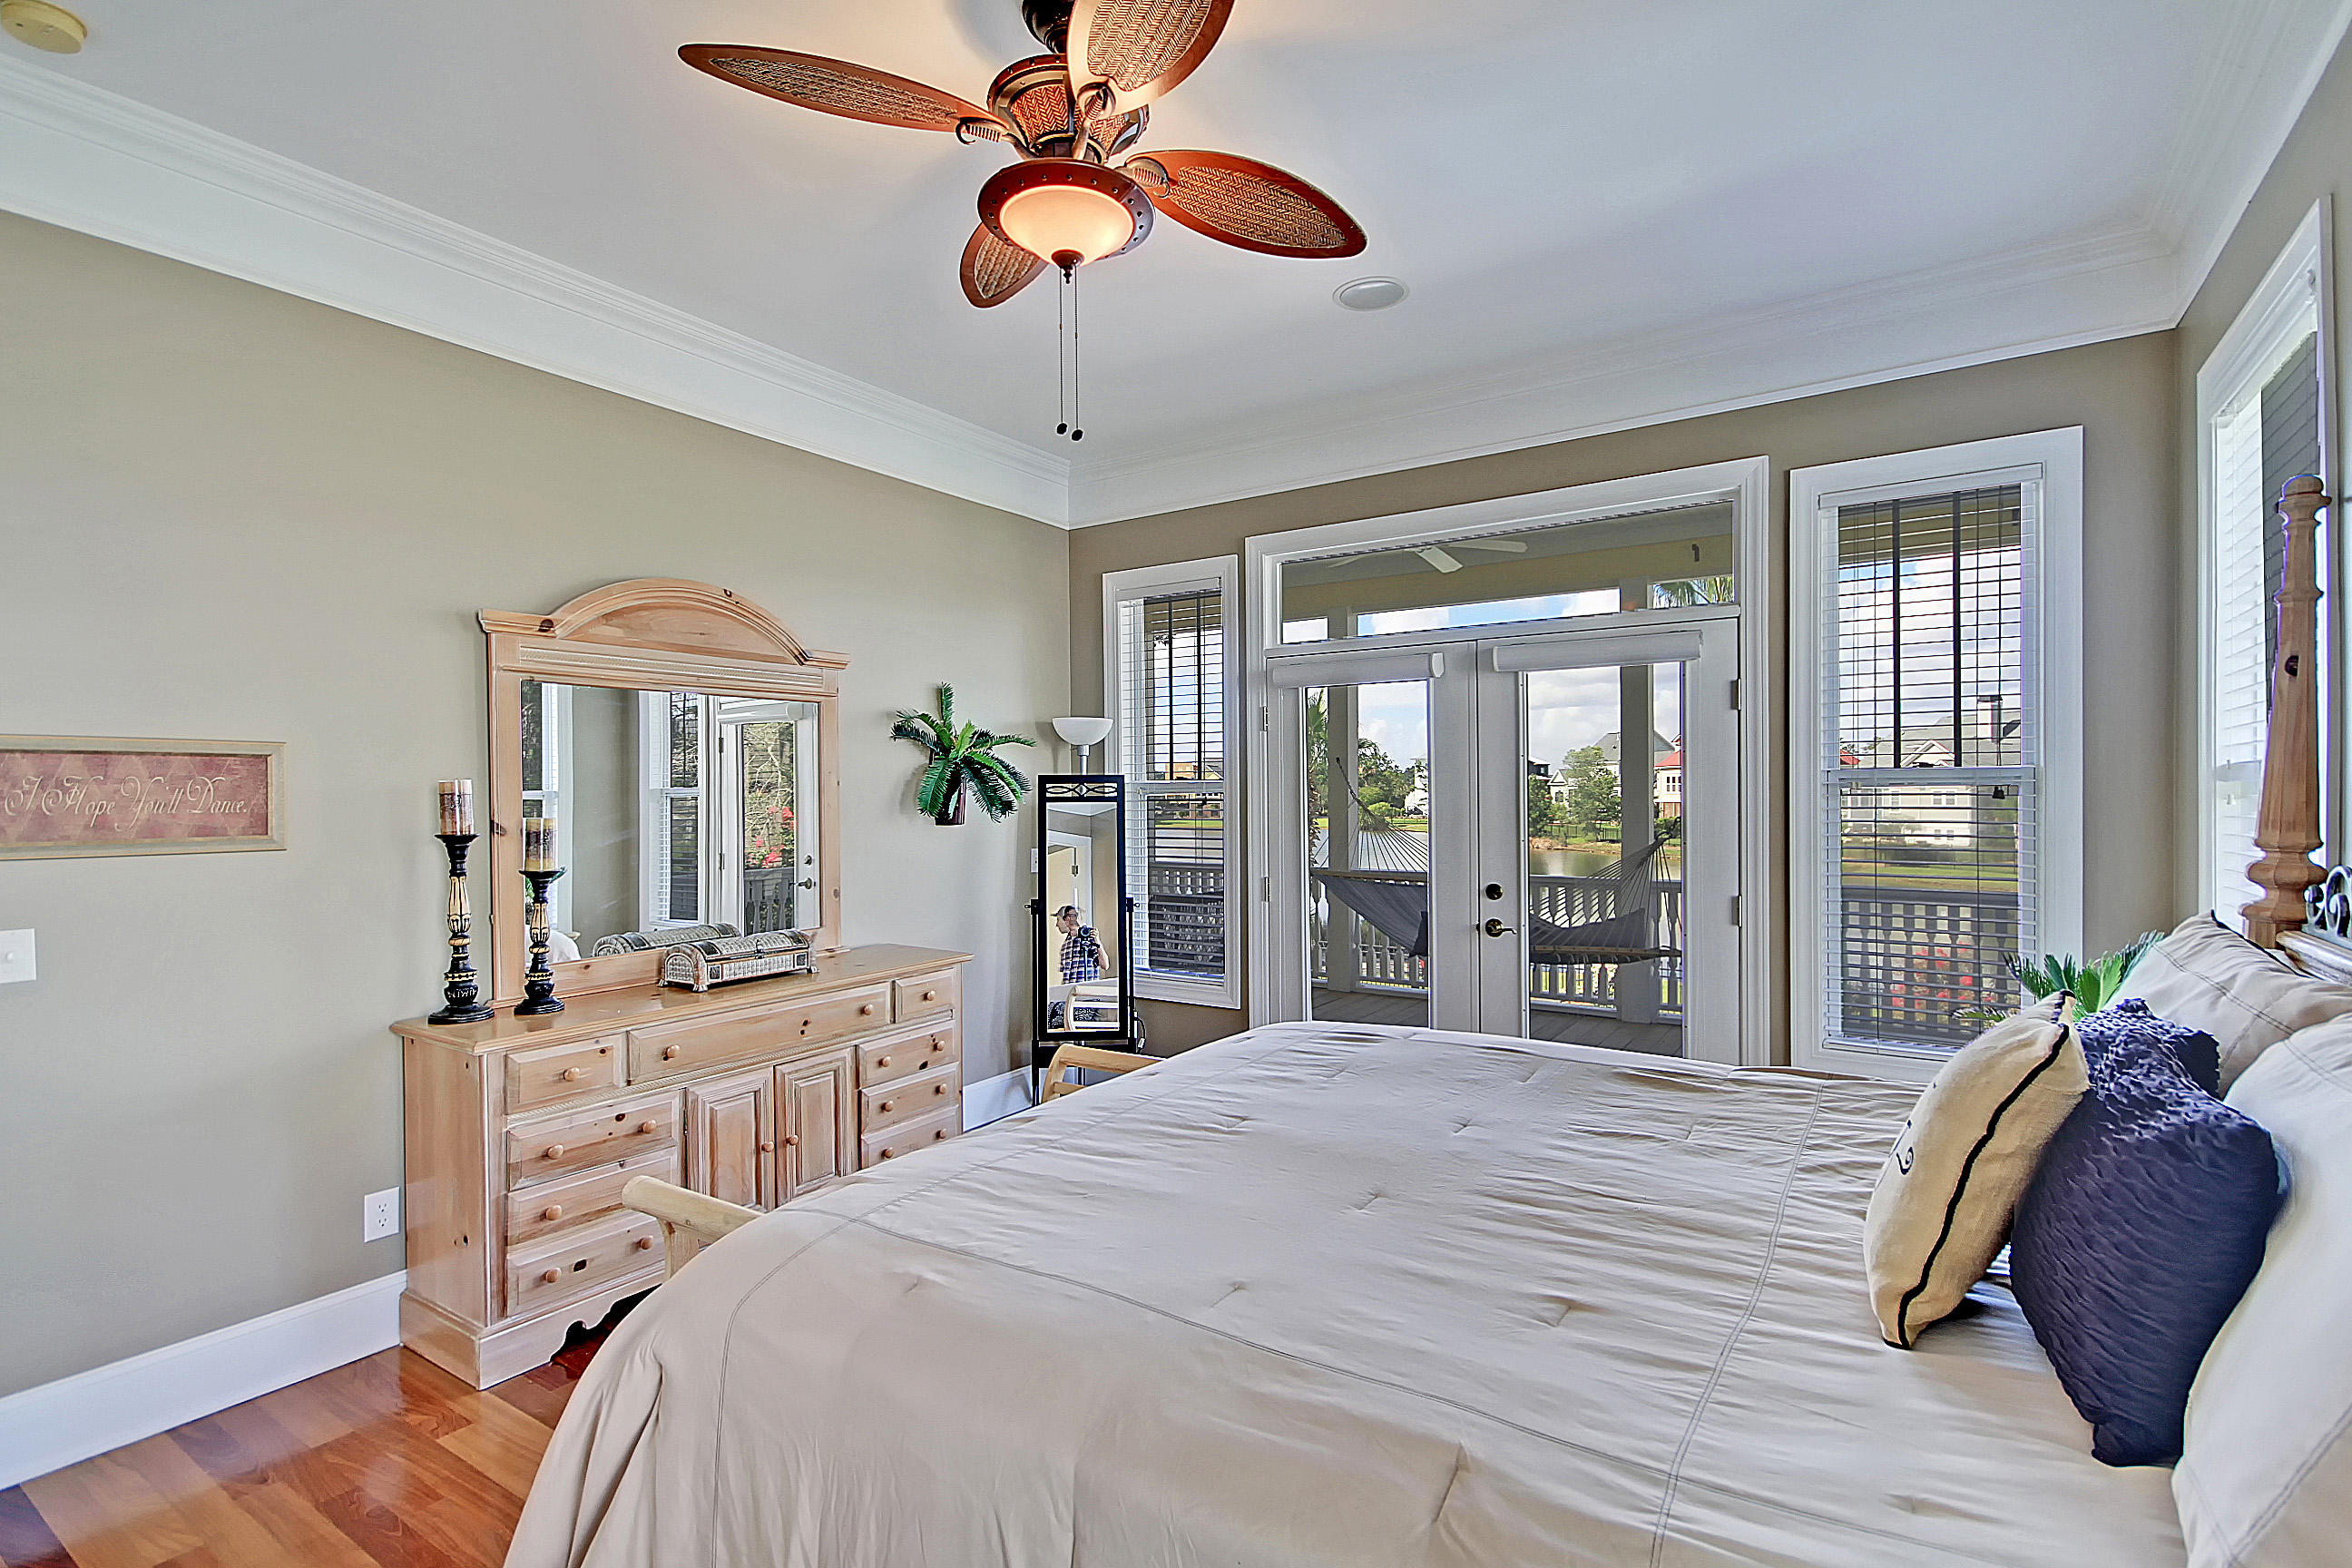 Rivertowne Country Club Homes For Sale - 1536 Rivertowne Country Club, Mount Pleasant, SC - 35